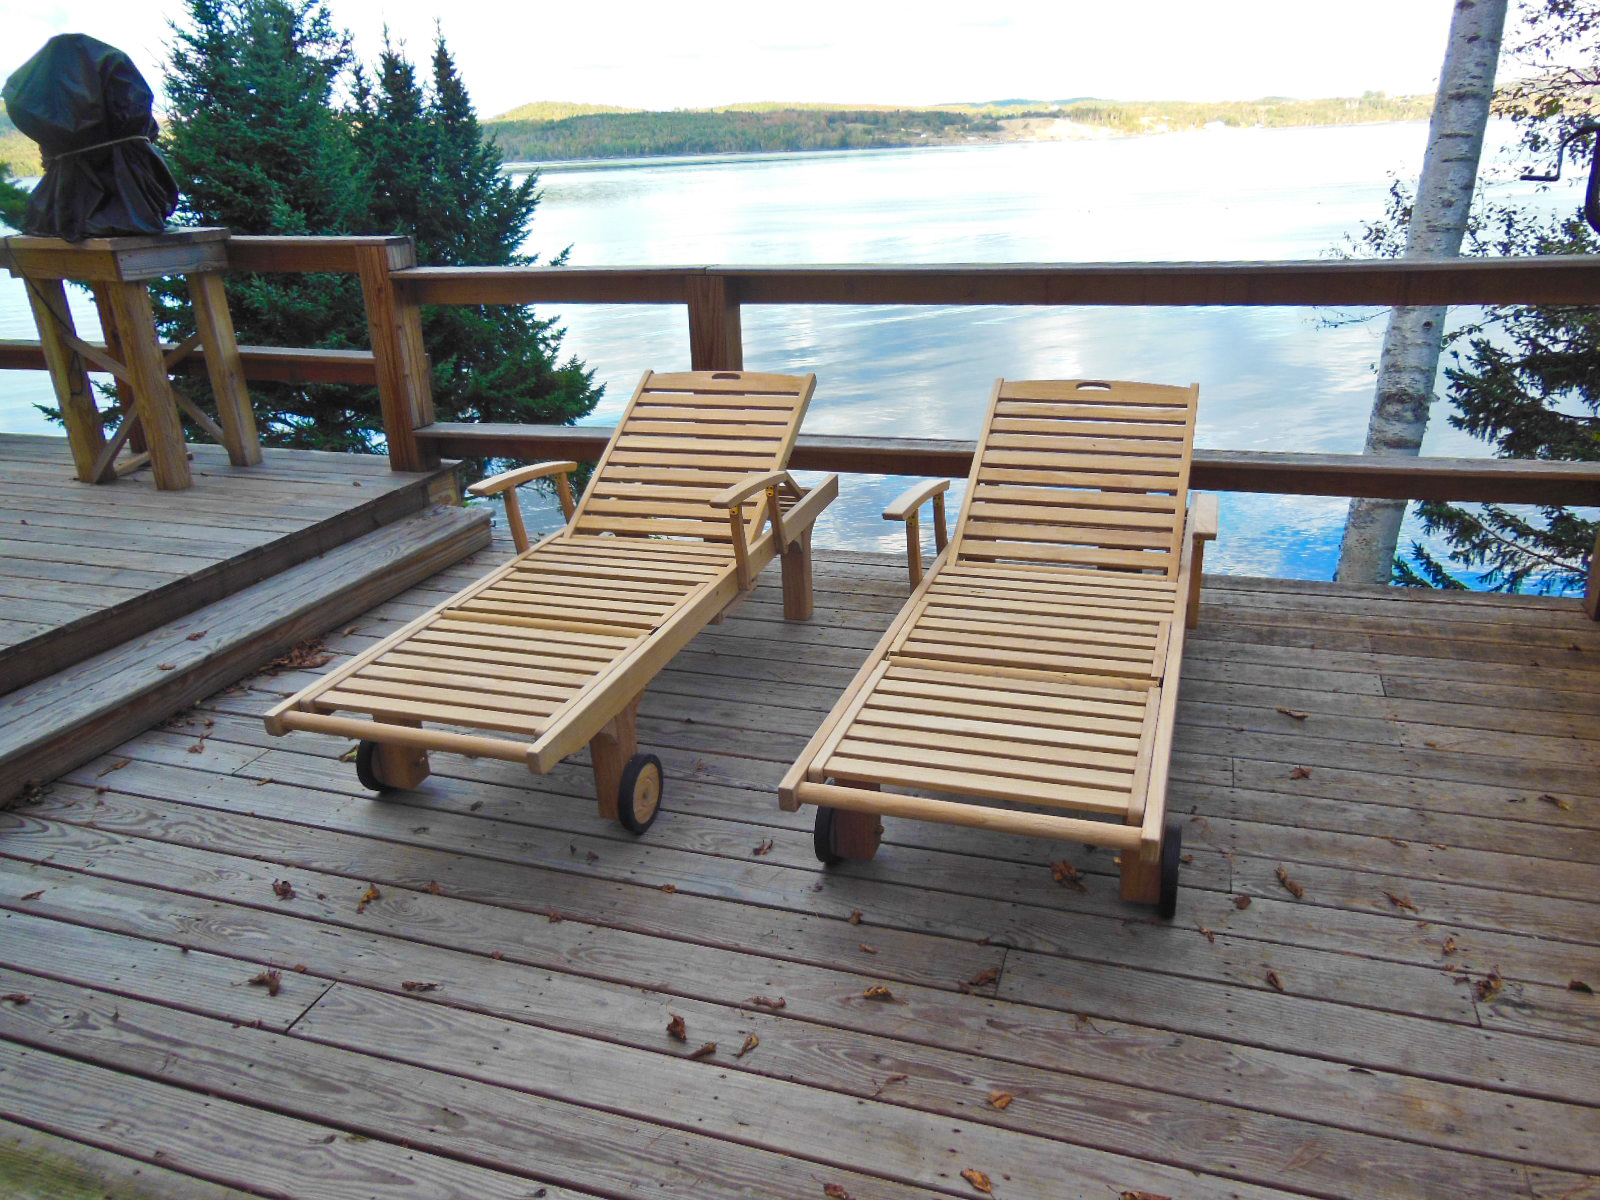 Goldenteak's Teak Teak Chaise Lounger with arms and tray (SLT-2-A) in peaceful Calais Maine